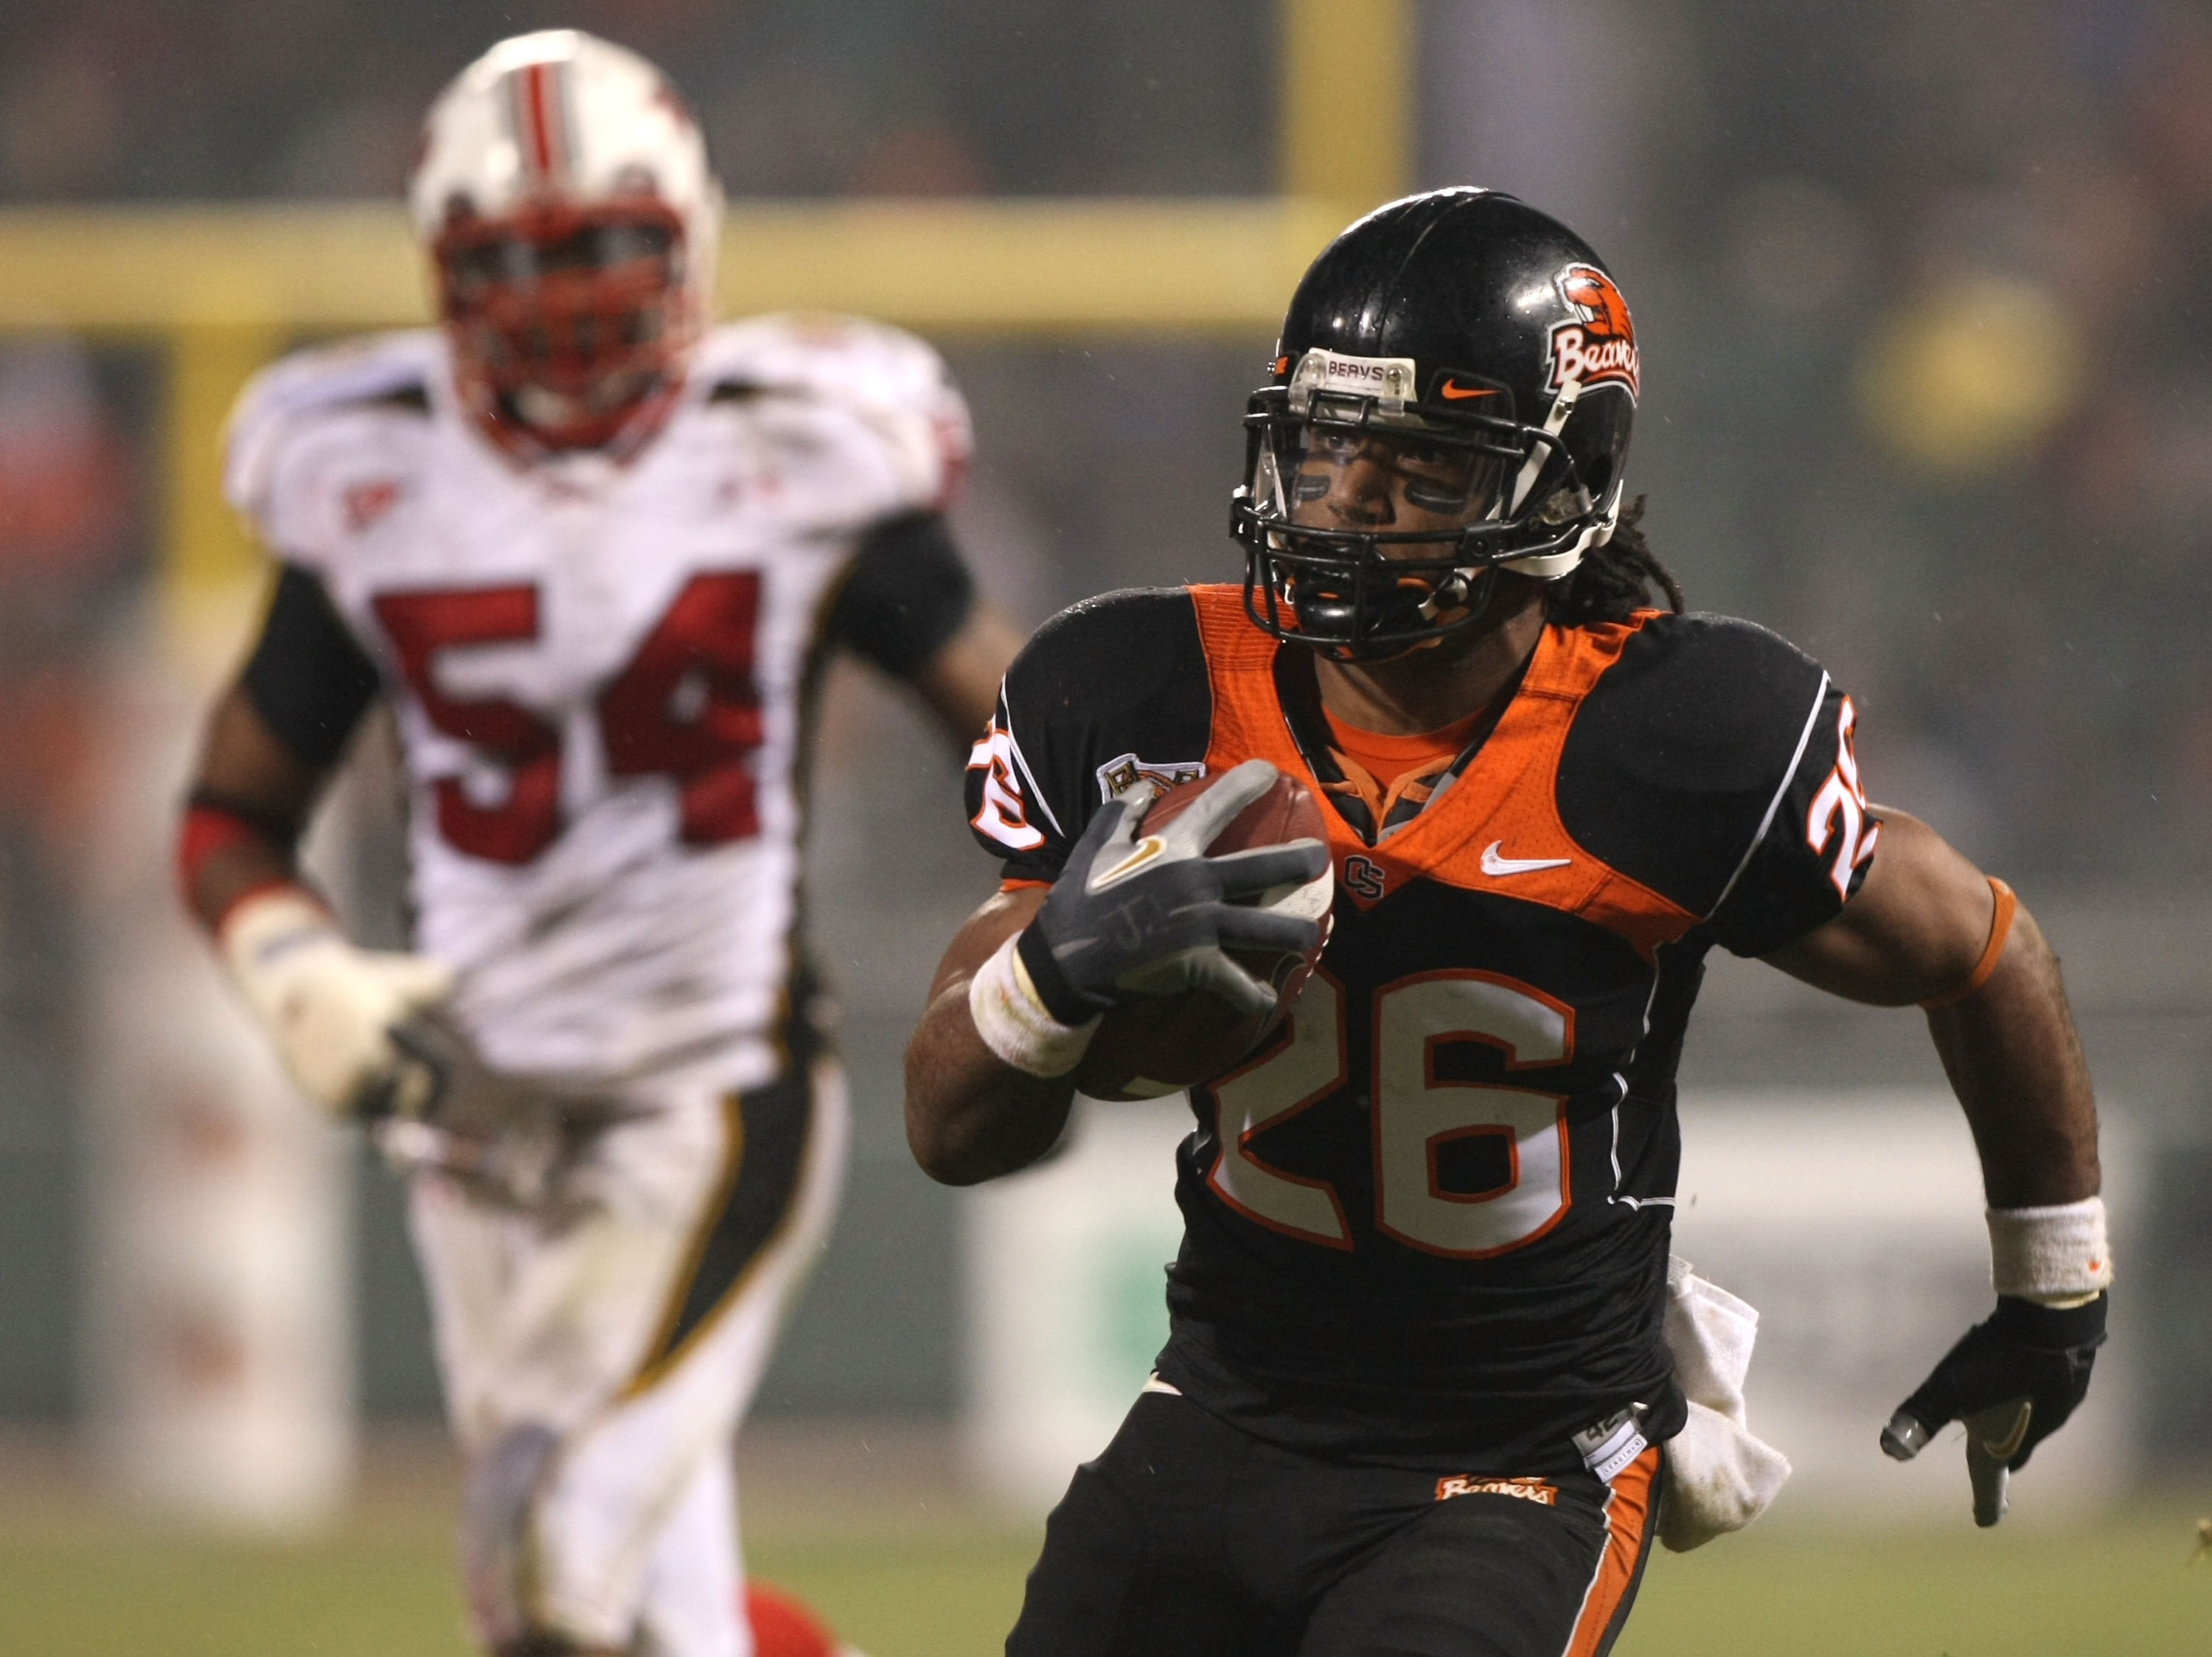 SAN FRANCISCO - DECEMBER 28:  Yvenson Bernard #26 of the Oregon State Beavers runs against the Maryland Terrapins during the Emerald Bowl at AT&T Park December 28, 2007 in San Francisco, California.  (Photo by Jed Jacobsohn/Getty Images)